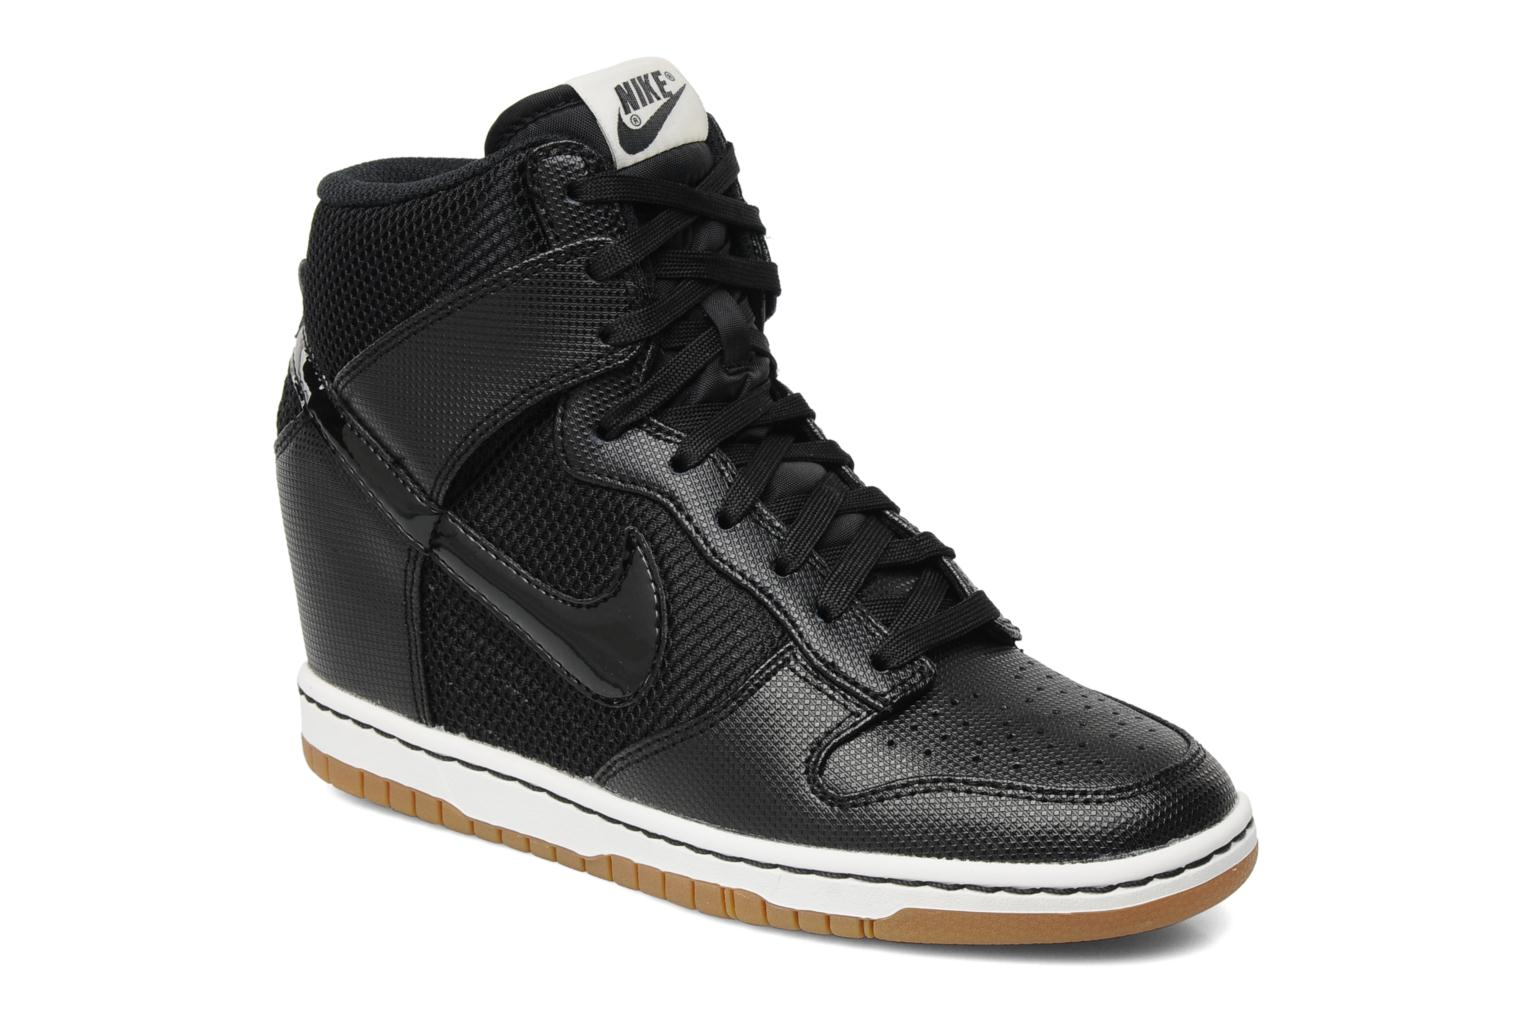 f69a6d1b9271 ... white fireberry 36657 bfb47  closeout trainers nike wmns dunk sky hi  mesh black detailed view pair view 3e8c7 f7652